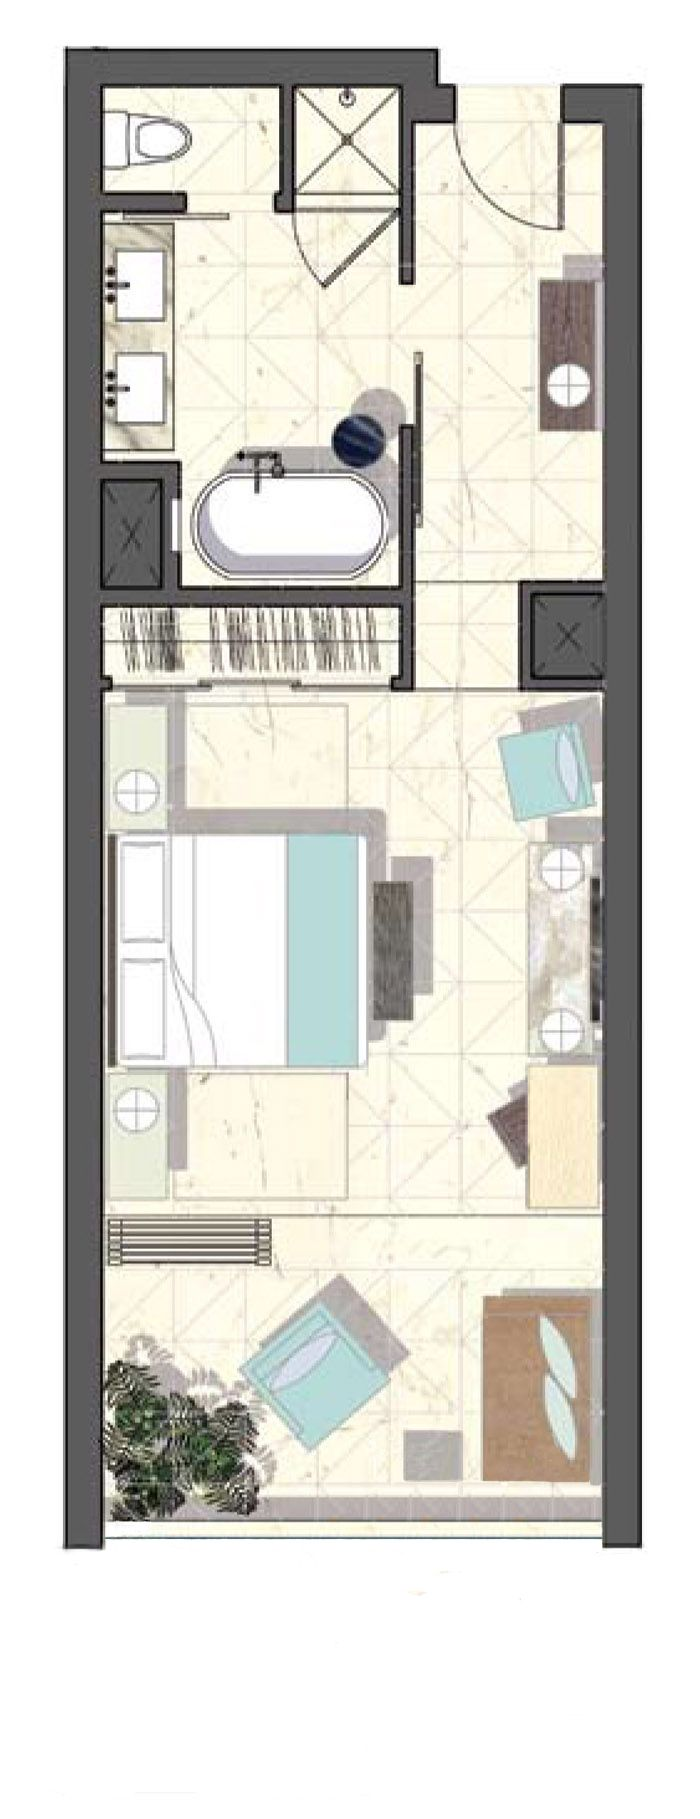 viceroy hotel layout good design for a room with a balcony viceroy hotel layout good design for a room with a balcony hotel interiorsfloor planshotel